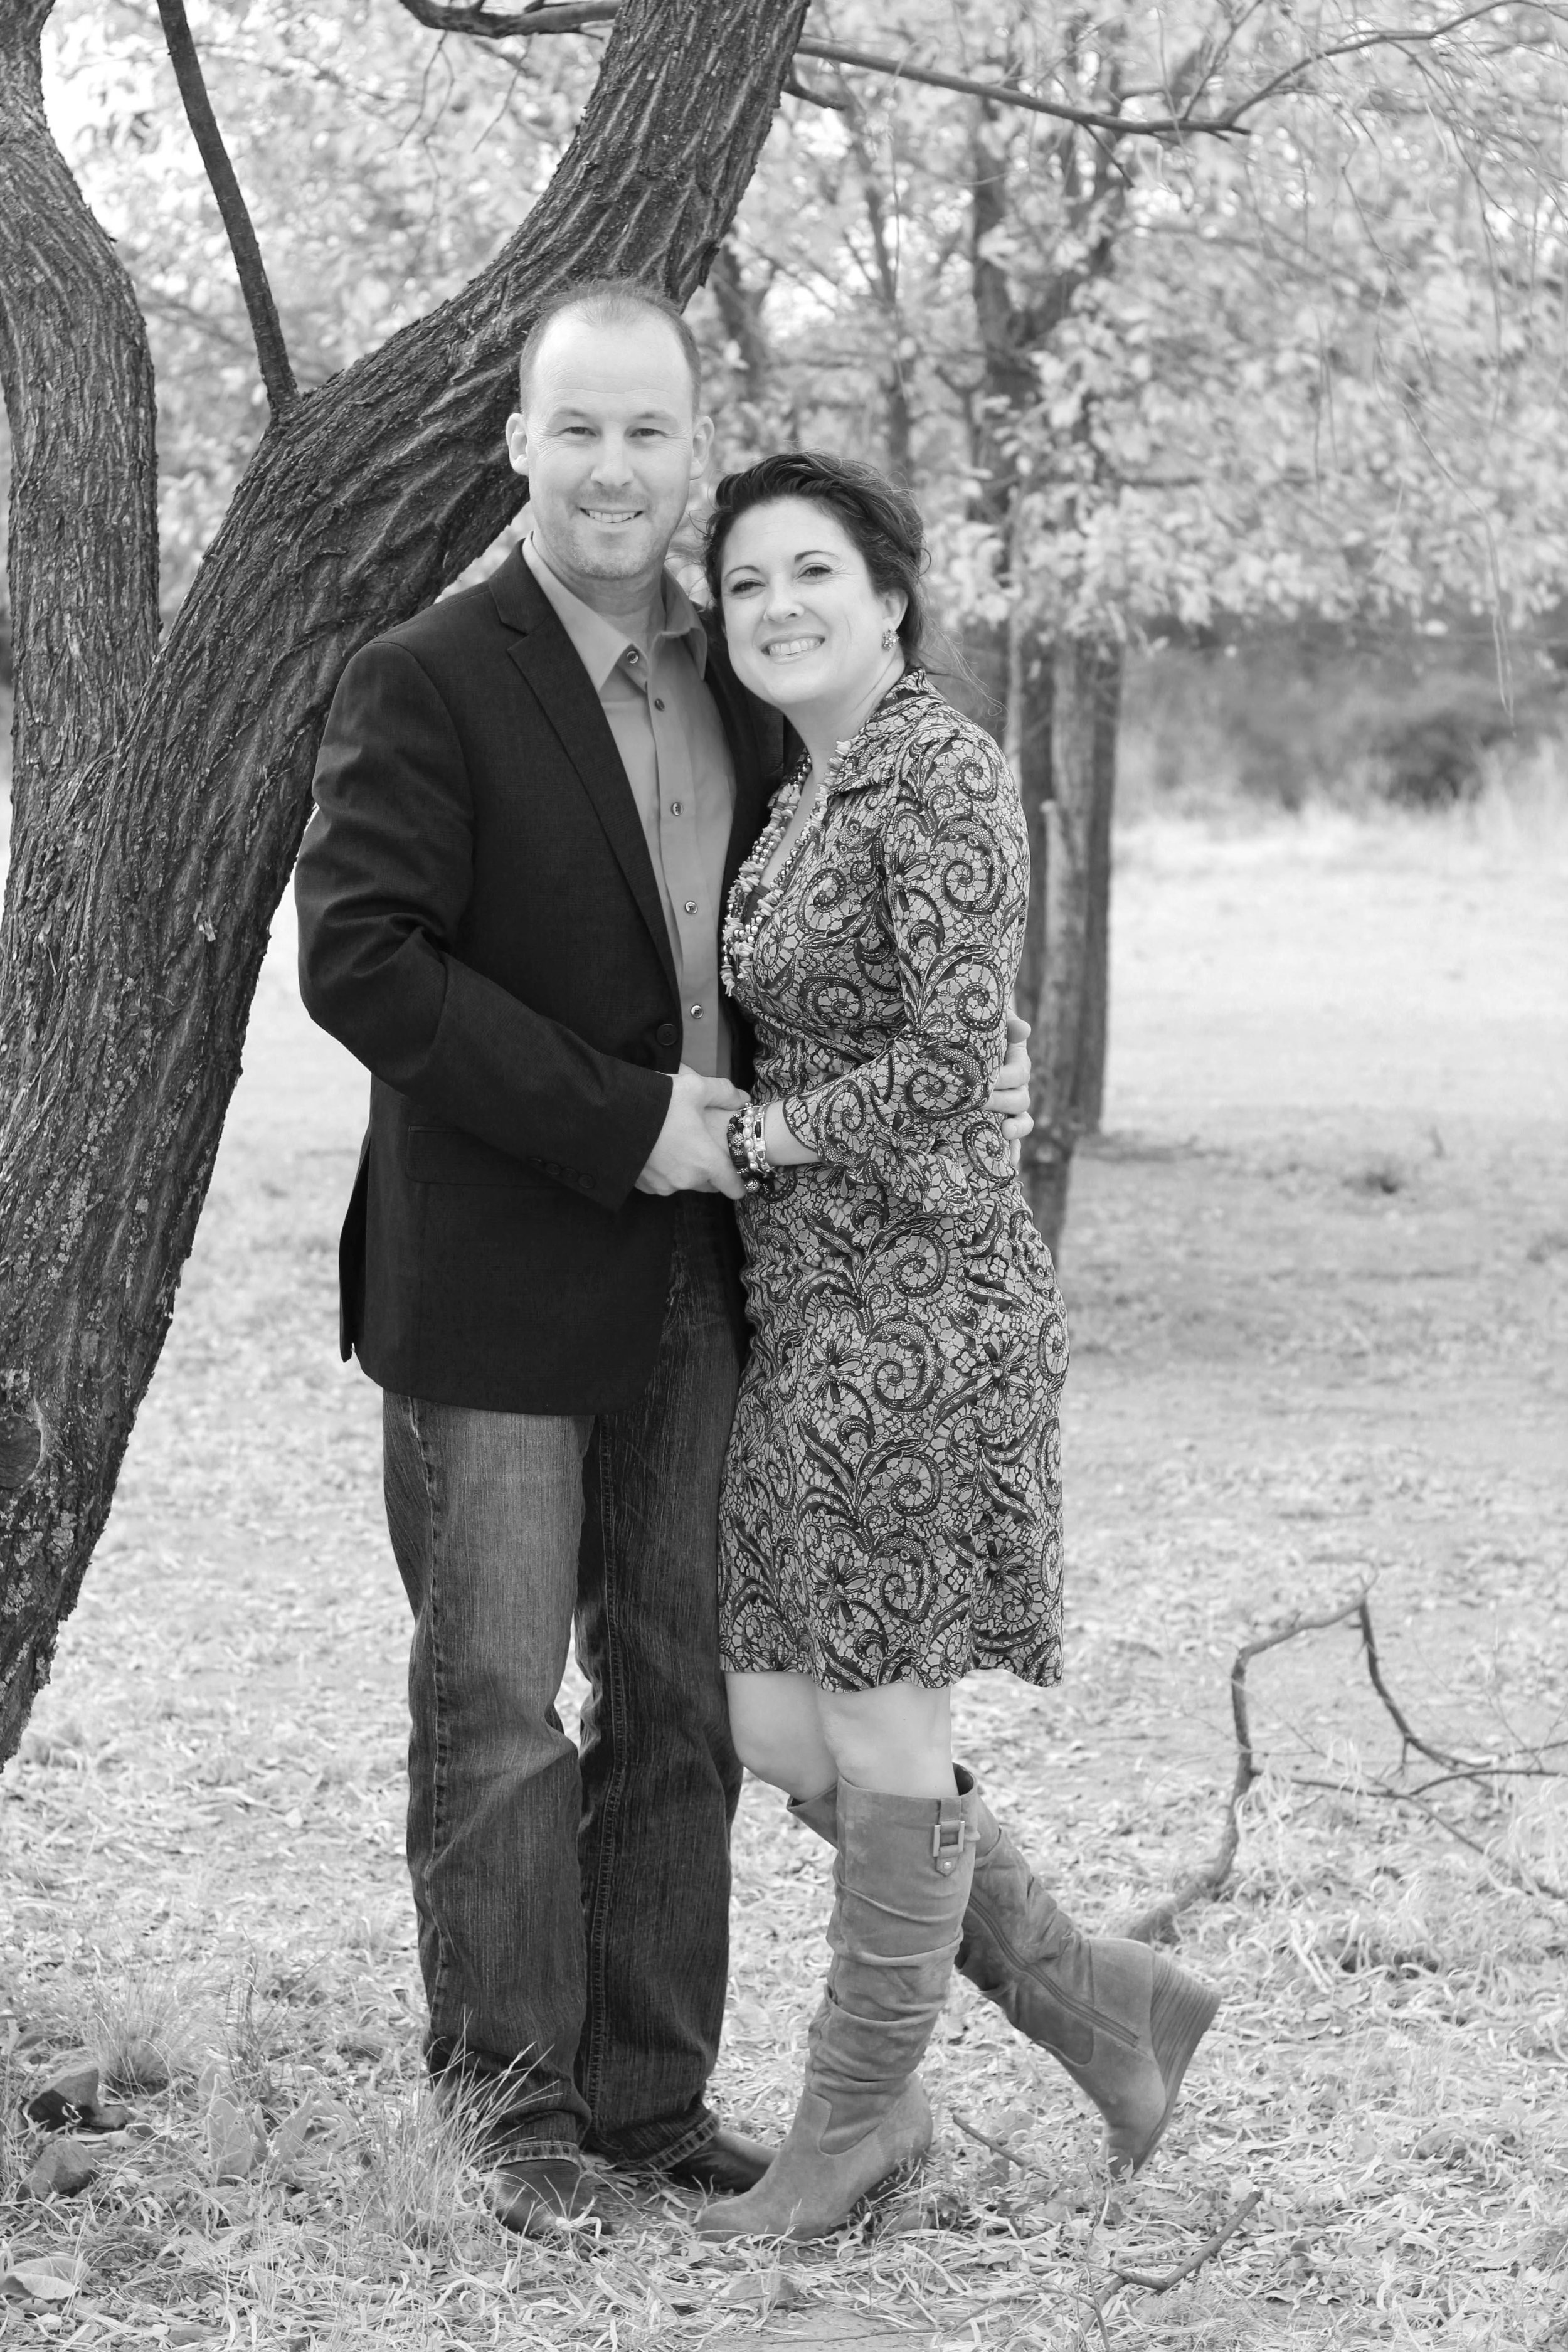 Pastors Randy and Candy Killman - Prescott CampusFrom Randy: I am a passionate leader who has been called to lead and serve not only as a lifestyle but also in marketplace ministry; as a pastor I have been called into full time ministry and I am also a professional Firefighter/Paramedic. My passion is caring for many in and out of trauma and I believe God equipped me years prior for both platforms of ministry. One of my life verses sums up my passion and caring; Matt 20:26-28 (paraphrased): I (Randy) am a man of servitude, slavery to the call and a man of giving for ransom of many. I have been positioned for the bigger, greater good of the unity and call in Christ. For that end I will serve. I am honored to be a part of ministry with the Rancho Milagro Foundation; along with the leadership of this amazing foundation and my family, we answer the call to help heal the afflicted of abuse due to PTSD. I am also honored to be the Chaplain of my Local 3690, the Sedona Verde Valley Firefighters. I am humbly honored to be the man God has created me to be and blessed to be chosen to lead as a Pastor within my denomination, home, community and the Kingdom of God. My 'yes' to God will never exhaust.Candy is a wife, mother, and daughter of the King who longs to live in the greatest revival the world has ever seen. She is passionate to see the body of Christ celebrating each other's God given purposes and helping them walk it out! Candy's greatest joy is seeing with God's eyes the gifts, anointing and call He has given to His children. She strongly desires to walk in the fullness of the Spirit (Matthew 10:8) and be the tangible love of God to others. Serving as the Multi-Site Leader of Operations for the past 5 years and now being assigned by God to join her husband as Co-Pastor of the Prescott Campus, her first call is being a daughter of the King, wife to her husband, and mother to her children as the understanding of revival starting in the home is great. 'Love them like Jesu